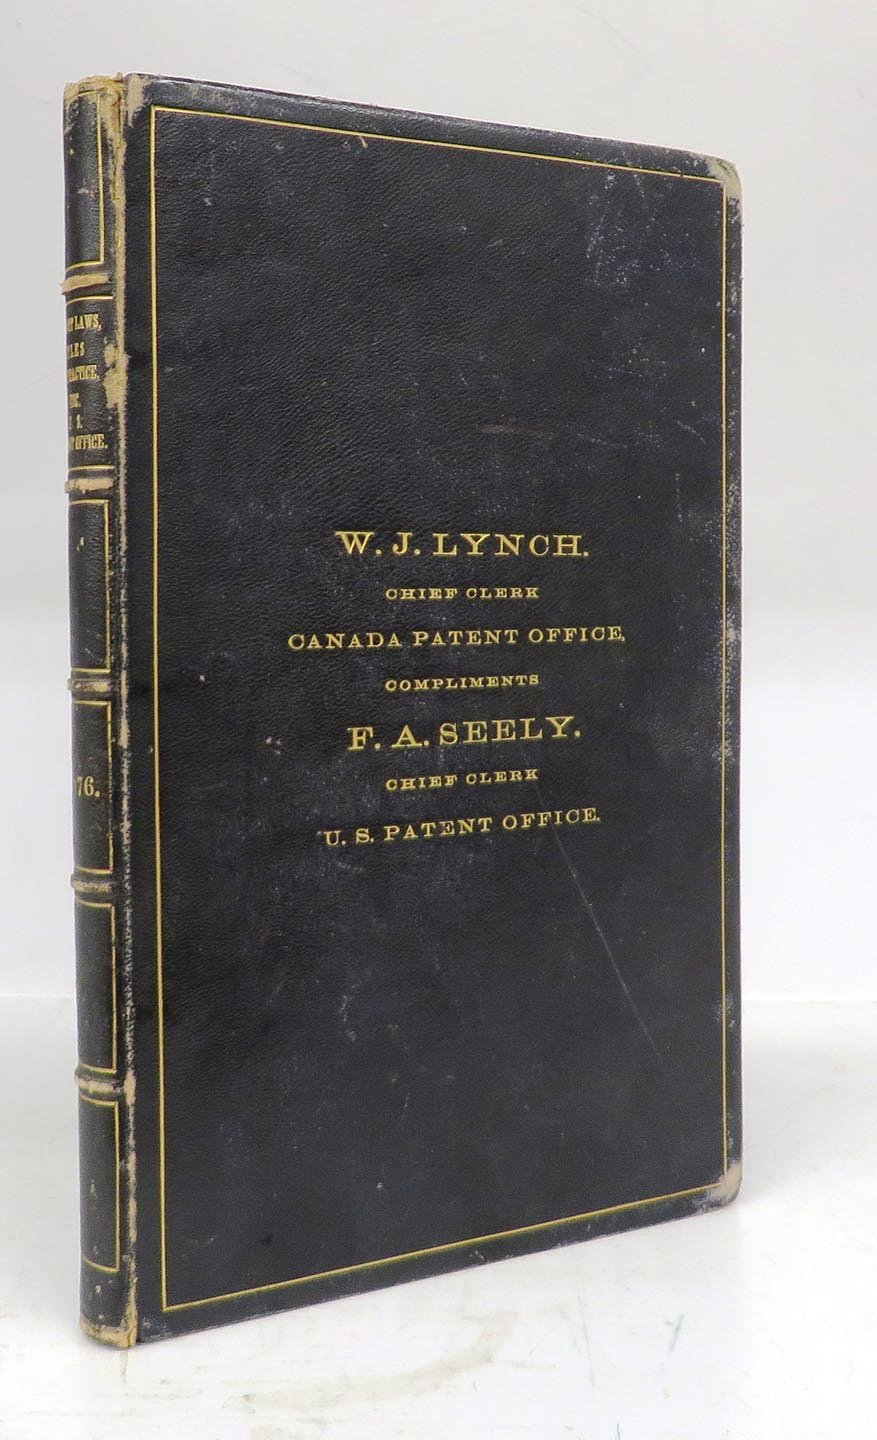 Rules of Practice in the United States Patent Office, Revised June 18, 1897, with Appendix of Amendments up to and Including December 1, 1897